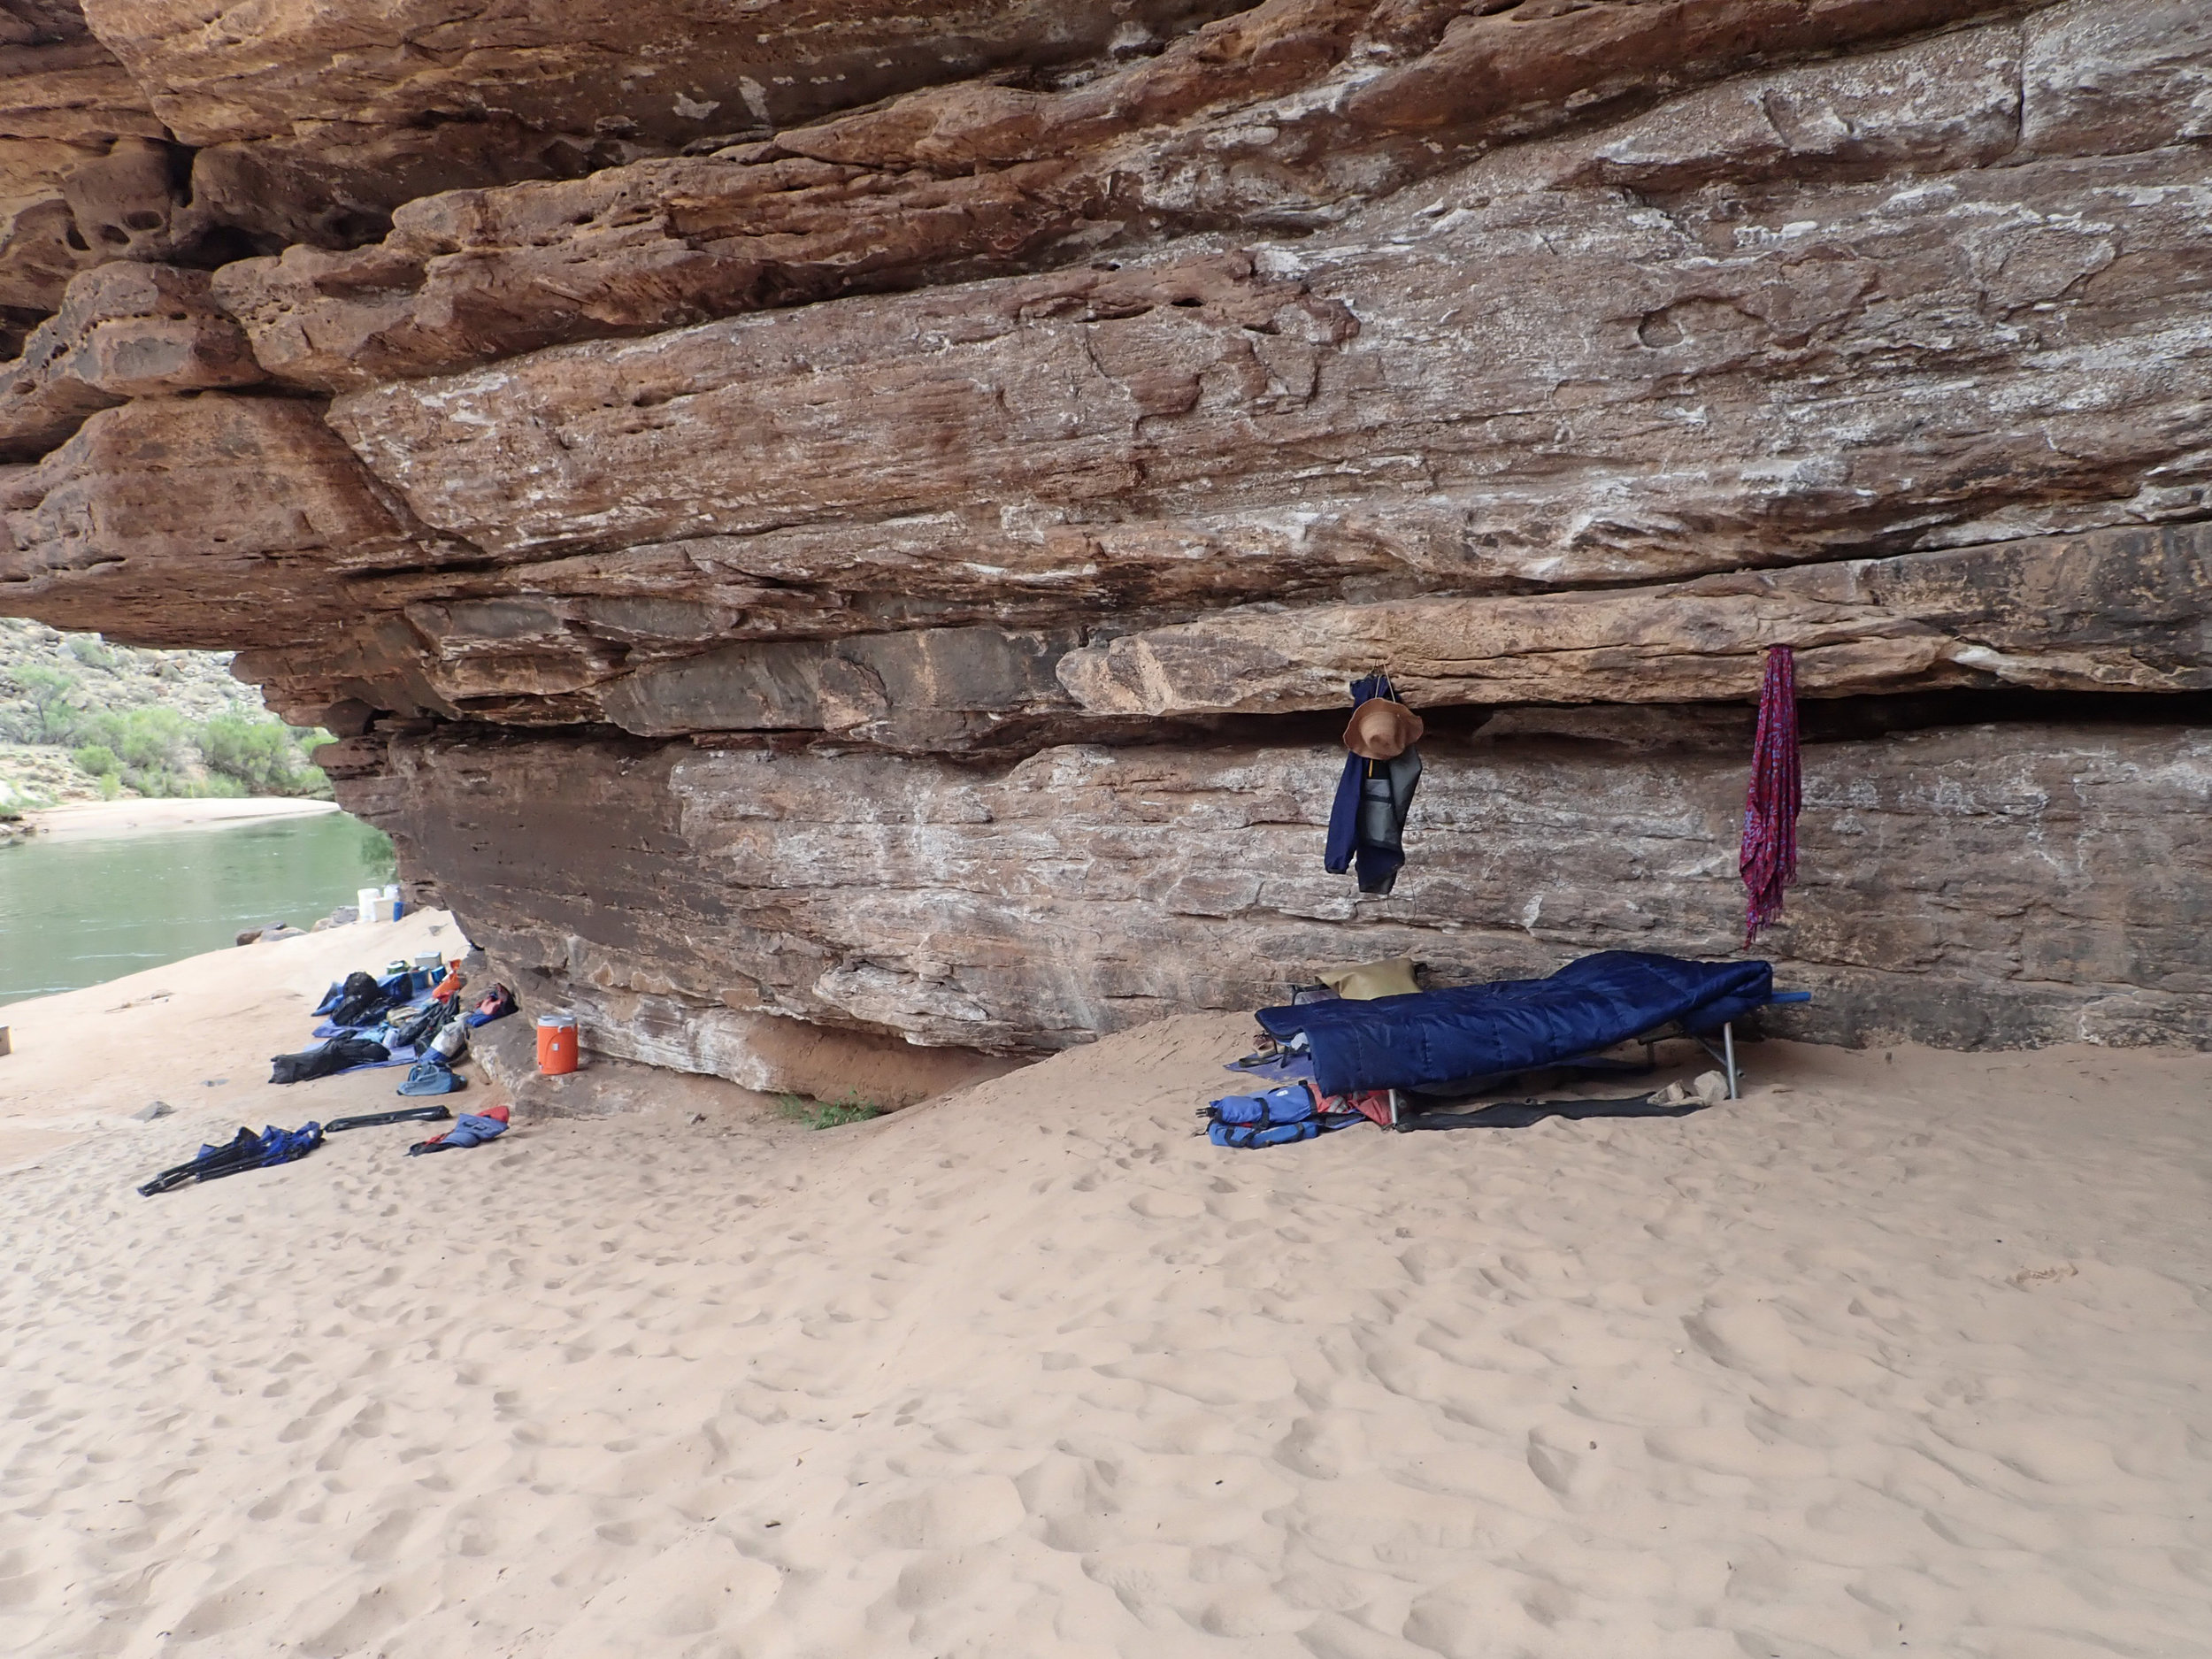 My 'bedroom' at Panchos Kitchen, mile 137 1/2. I stuck driftwood into the rock crevasses to hang my clothes.